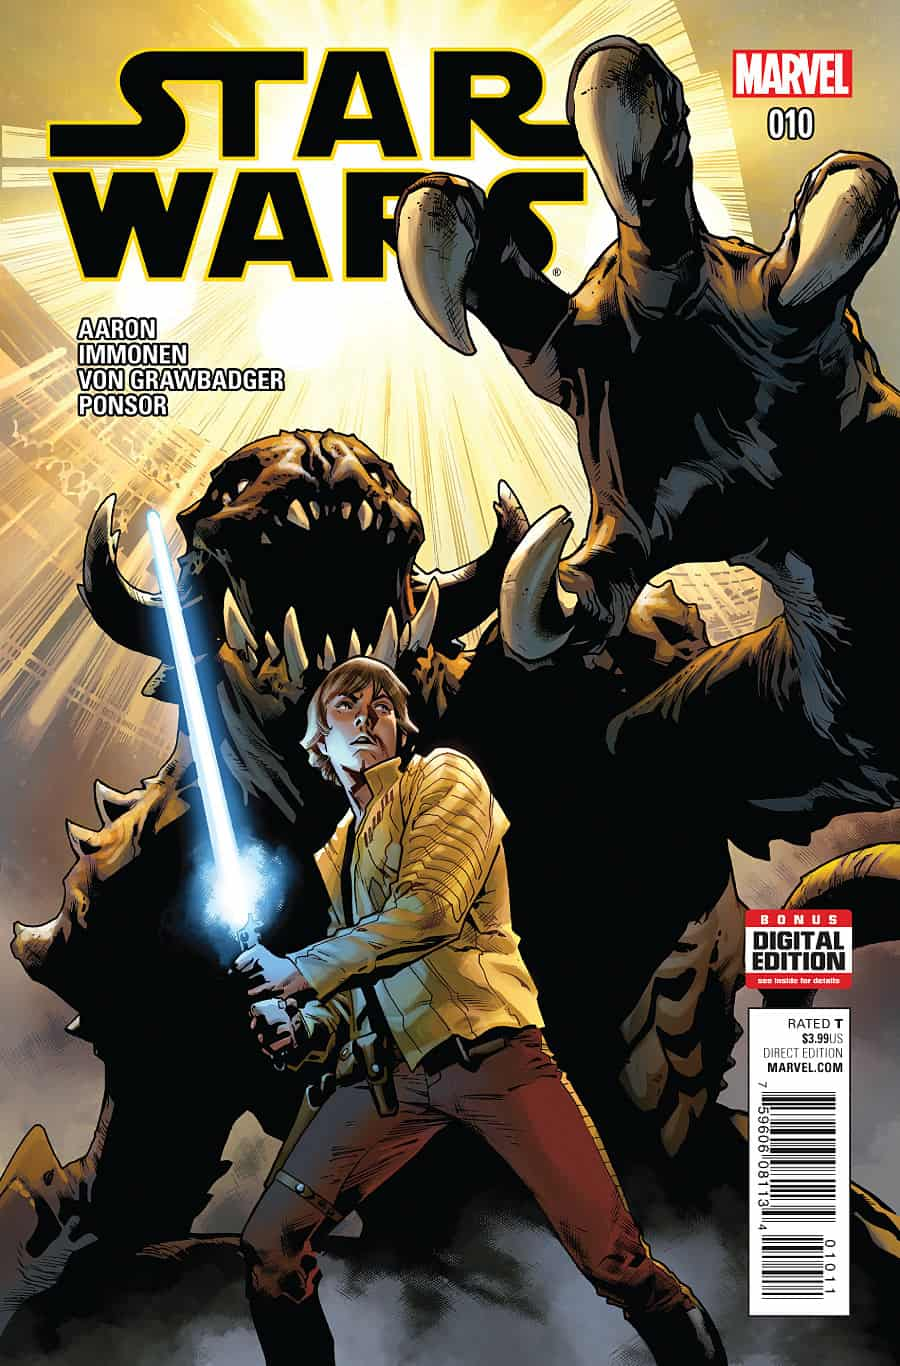 Star Wars #10 - Cover